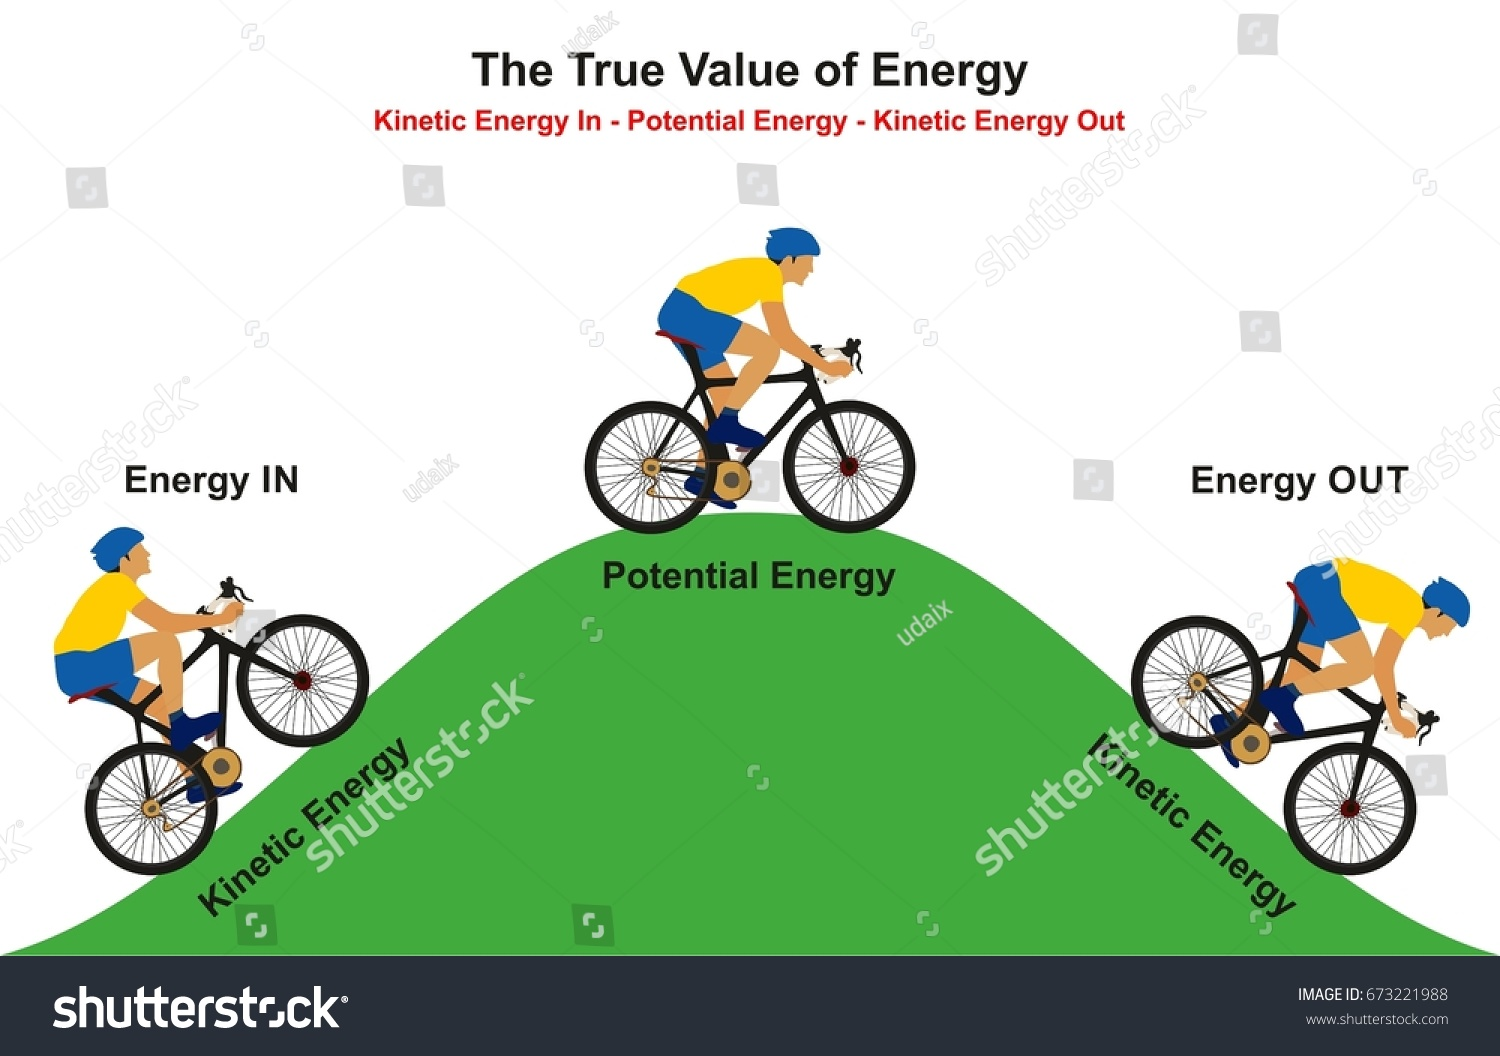 energy transformation diagram examples 2001 dodge neon coil pack wiring true value infographic example stock